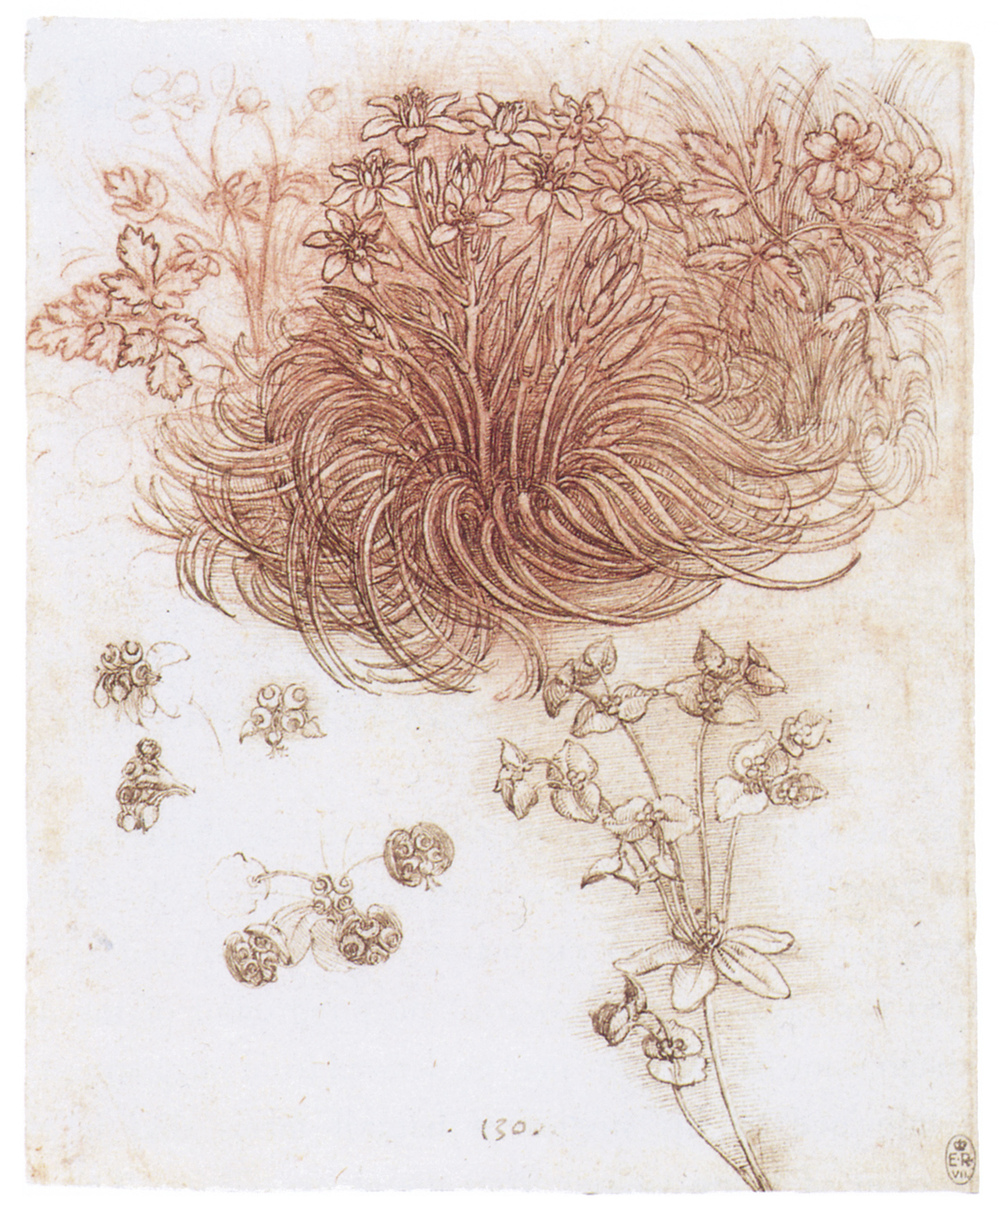 Leonardo da Vinci - Drawings - Plants - 02.JPG